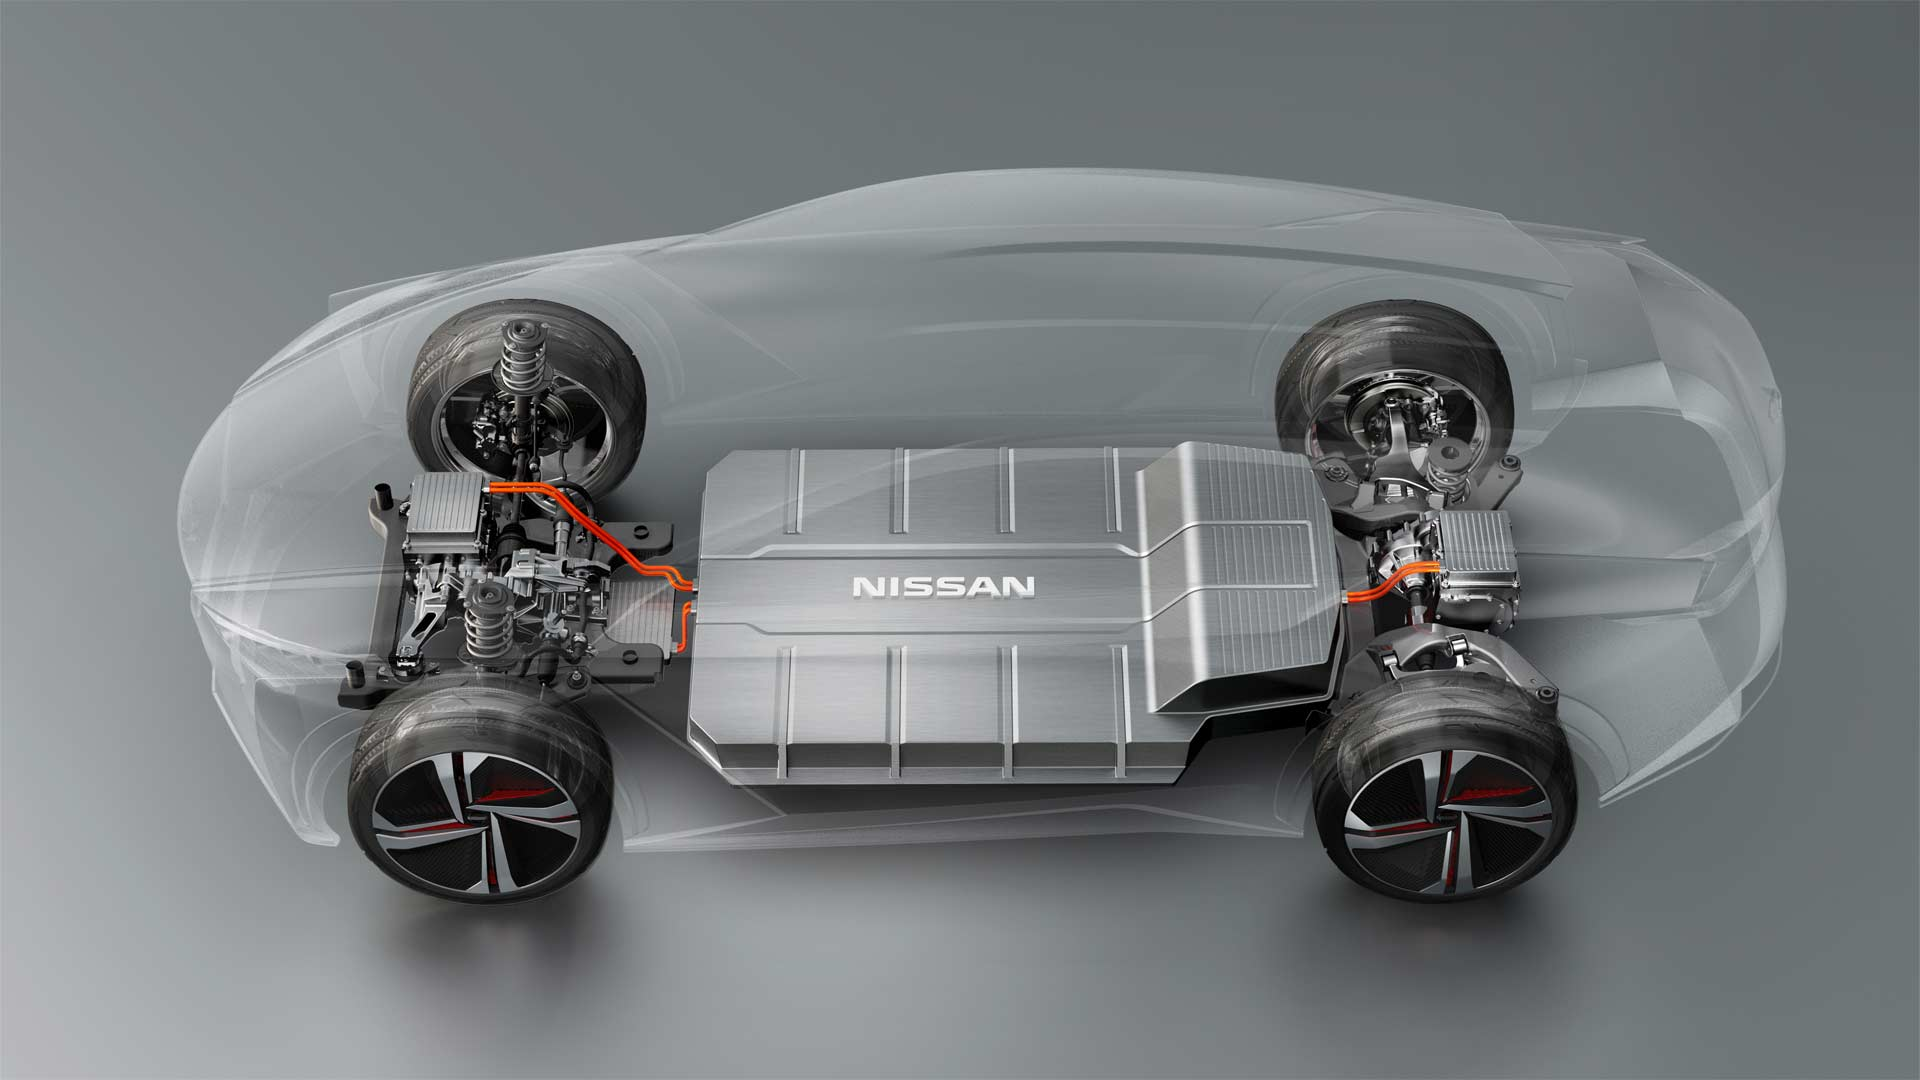 Nissan-IMx-zero-emission-concept-chassis-battery-technology